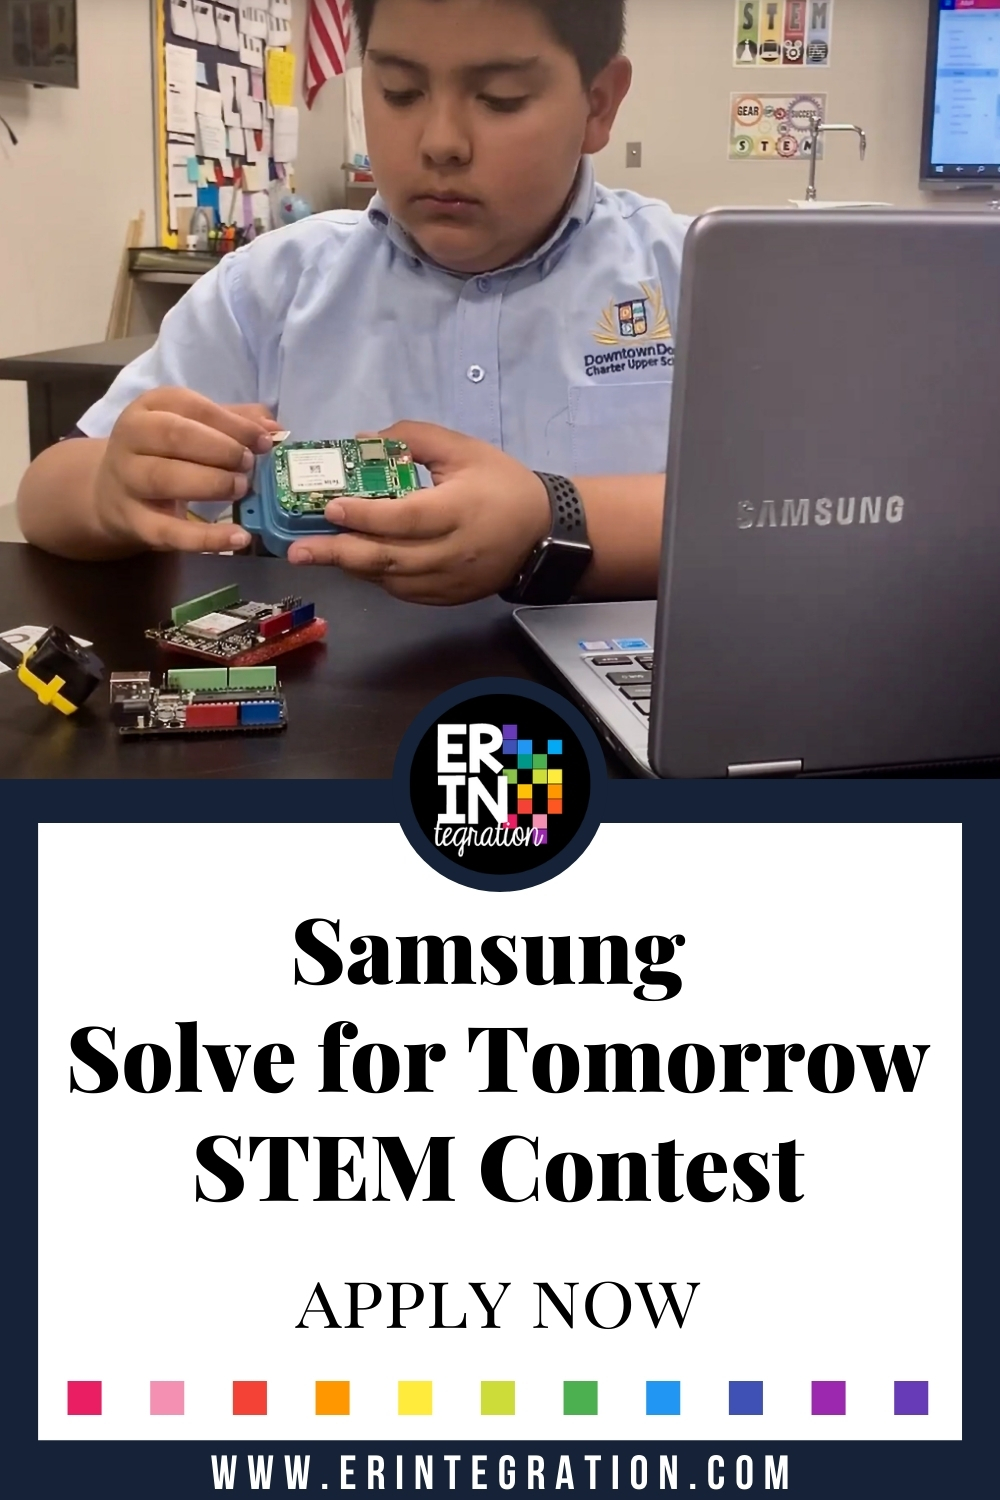 image of student building with circuits for Samsung Solve for Tomorrow STEM Contest